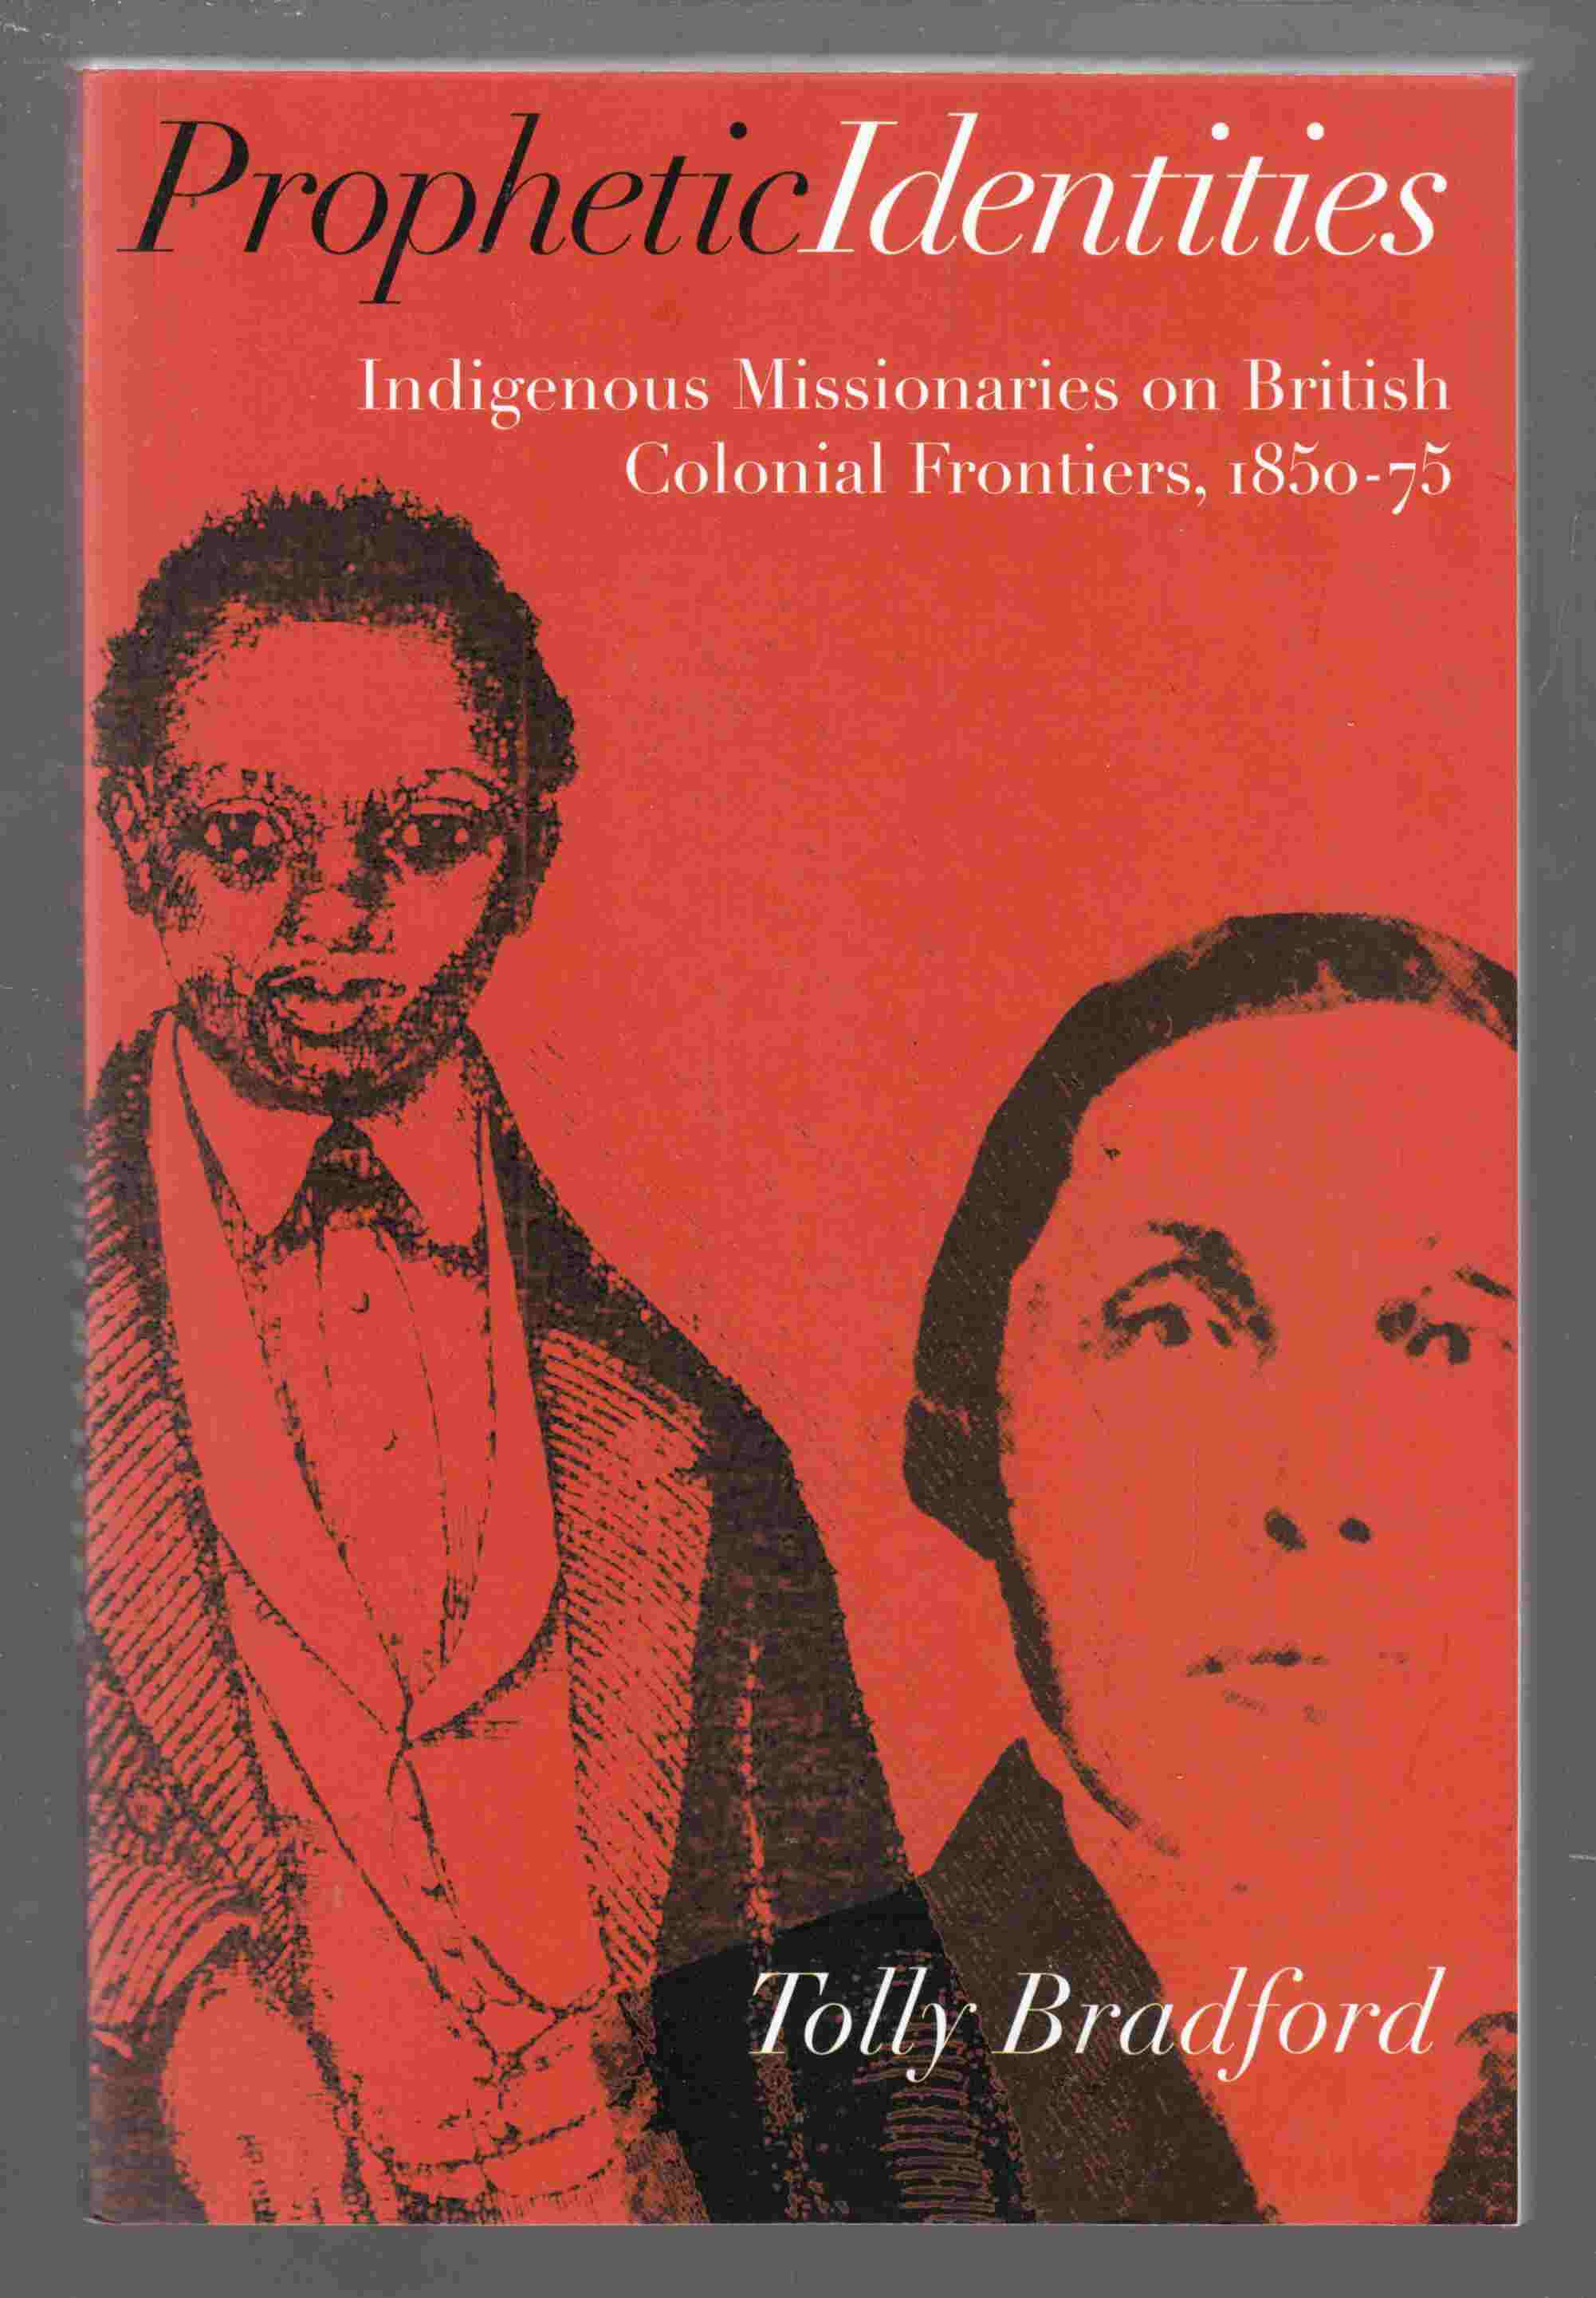 Image for Prophetic Identities Indigenous Missionaries on British Colonial Frontiers, 1850-75